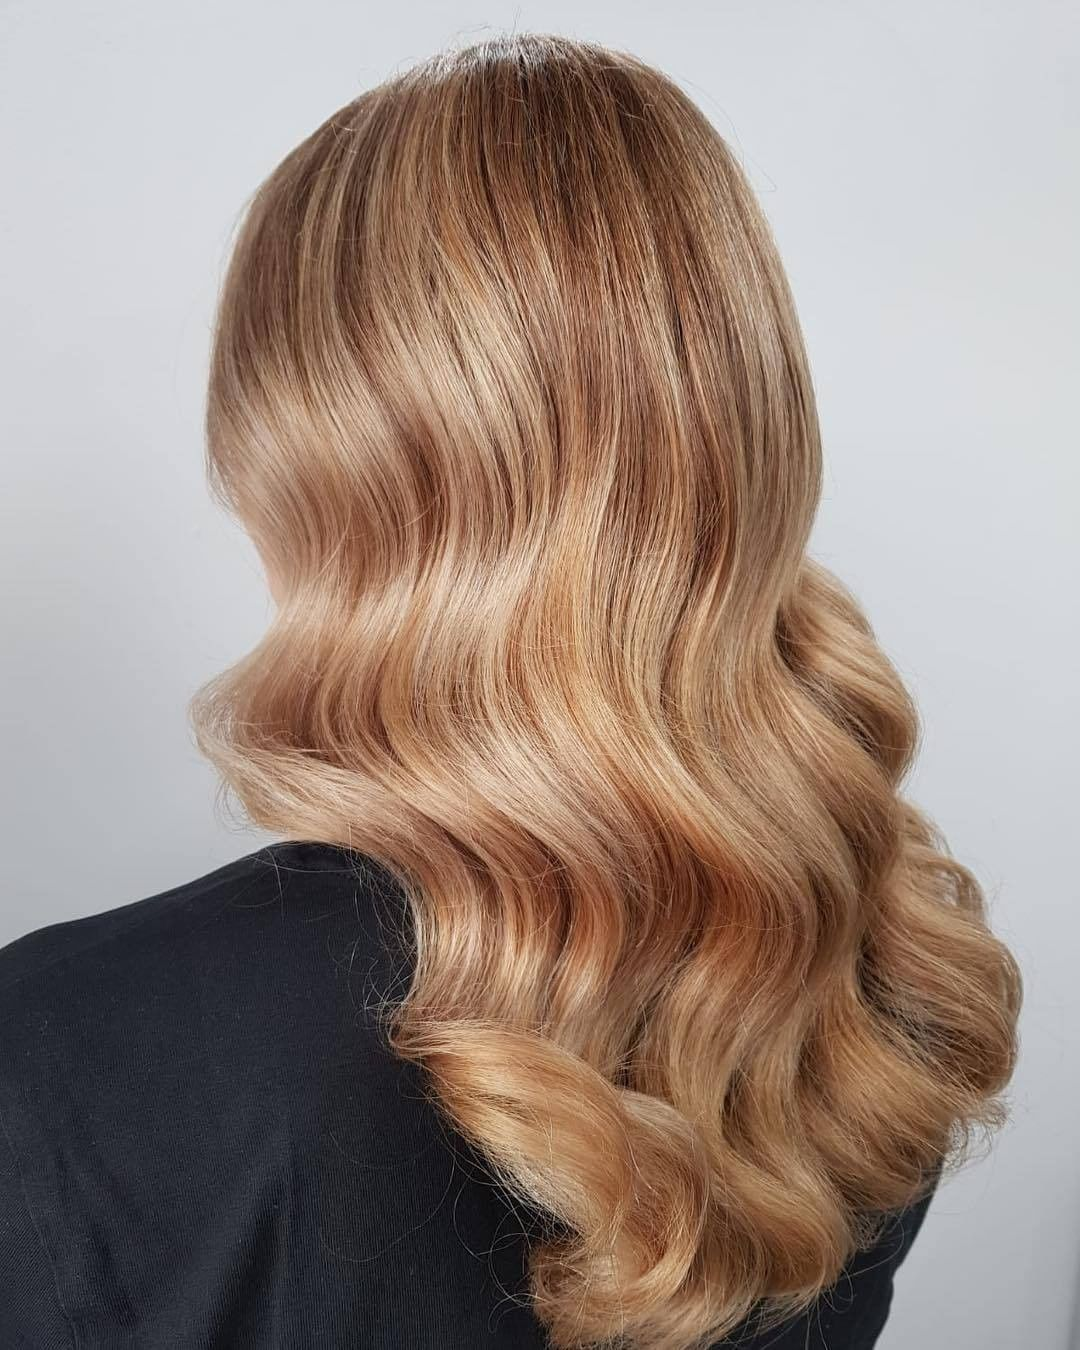 Blonde Hair Color Ideas For Summer Vida Joven In 2020 Blonde Hair Inspiration Blonde Hair Color Colored Hair Tips